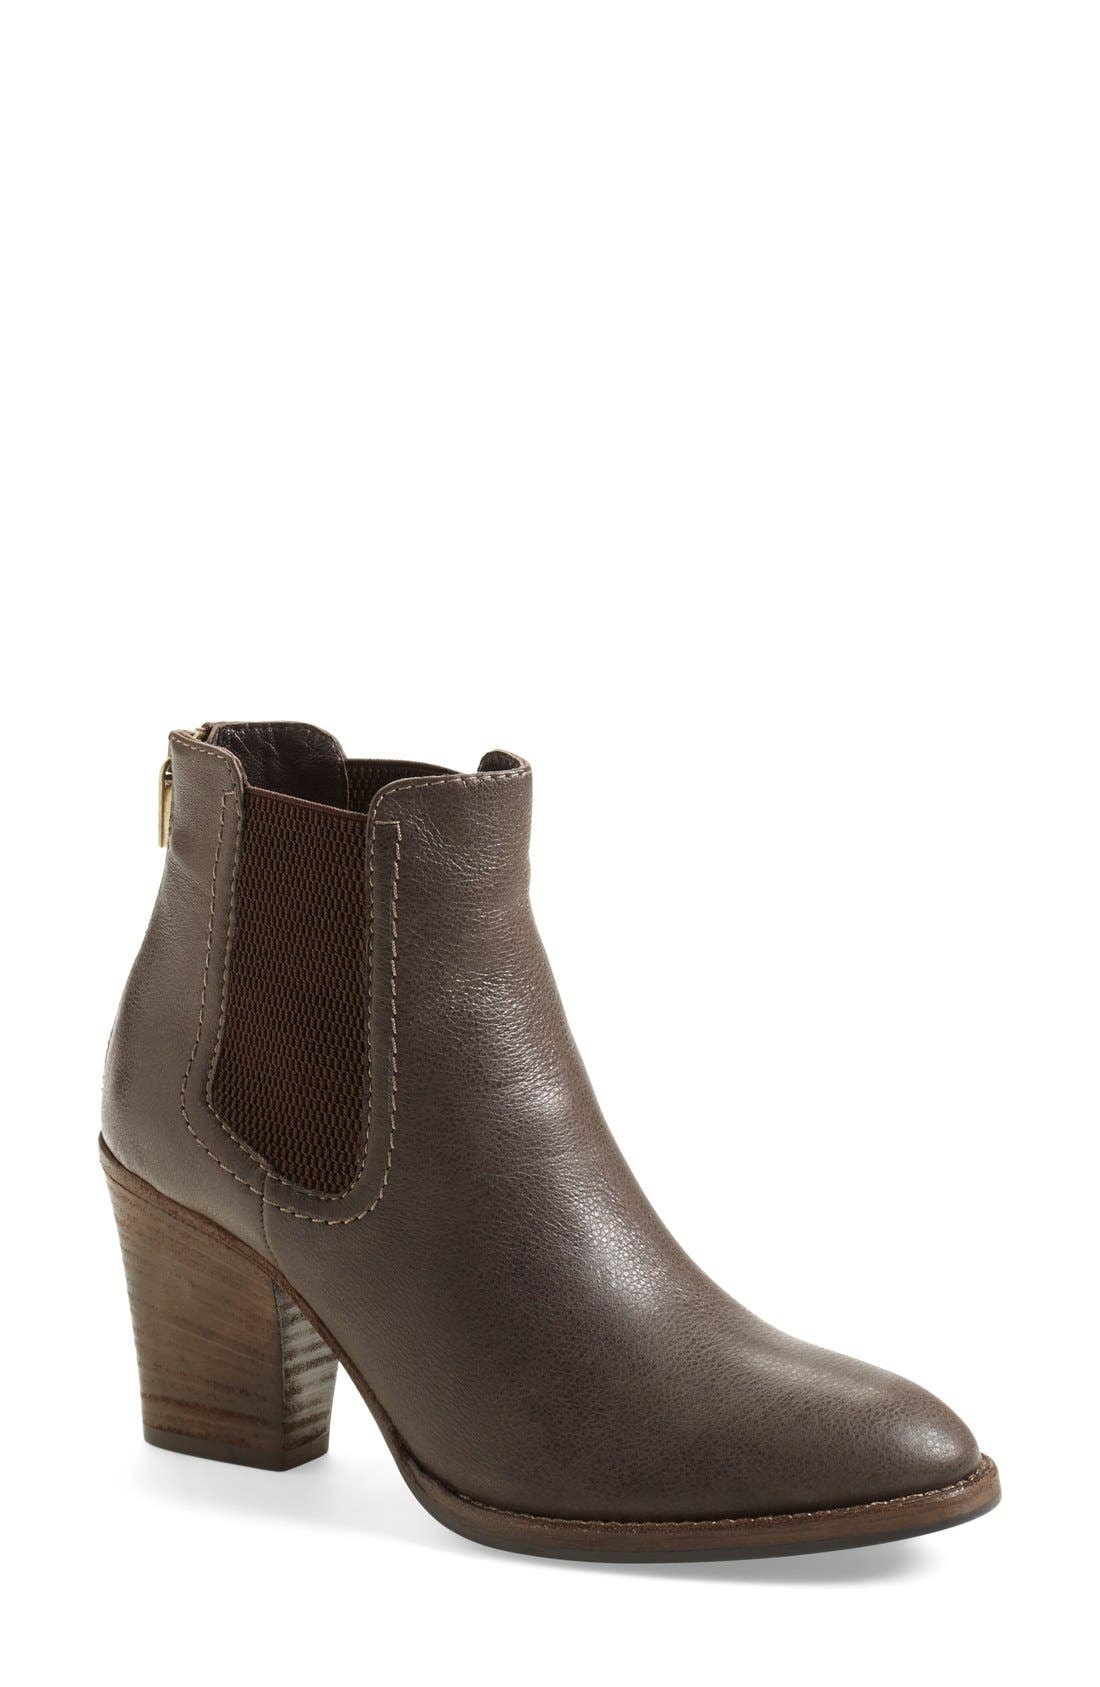 Main Image - Aquatalia 'Fairly' Weatherproof Ankle Bootie (Women)